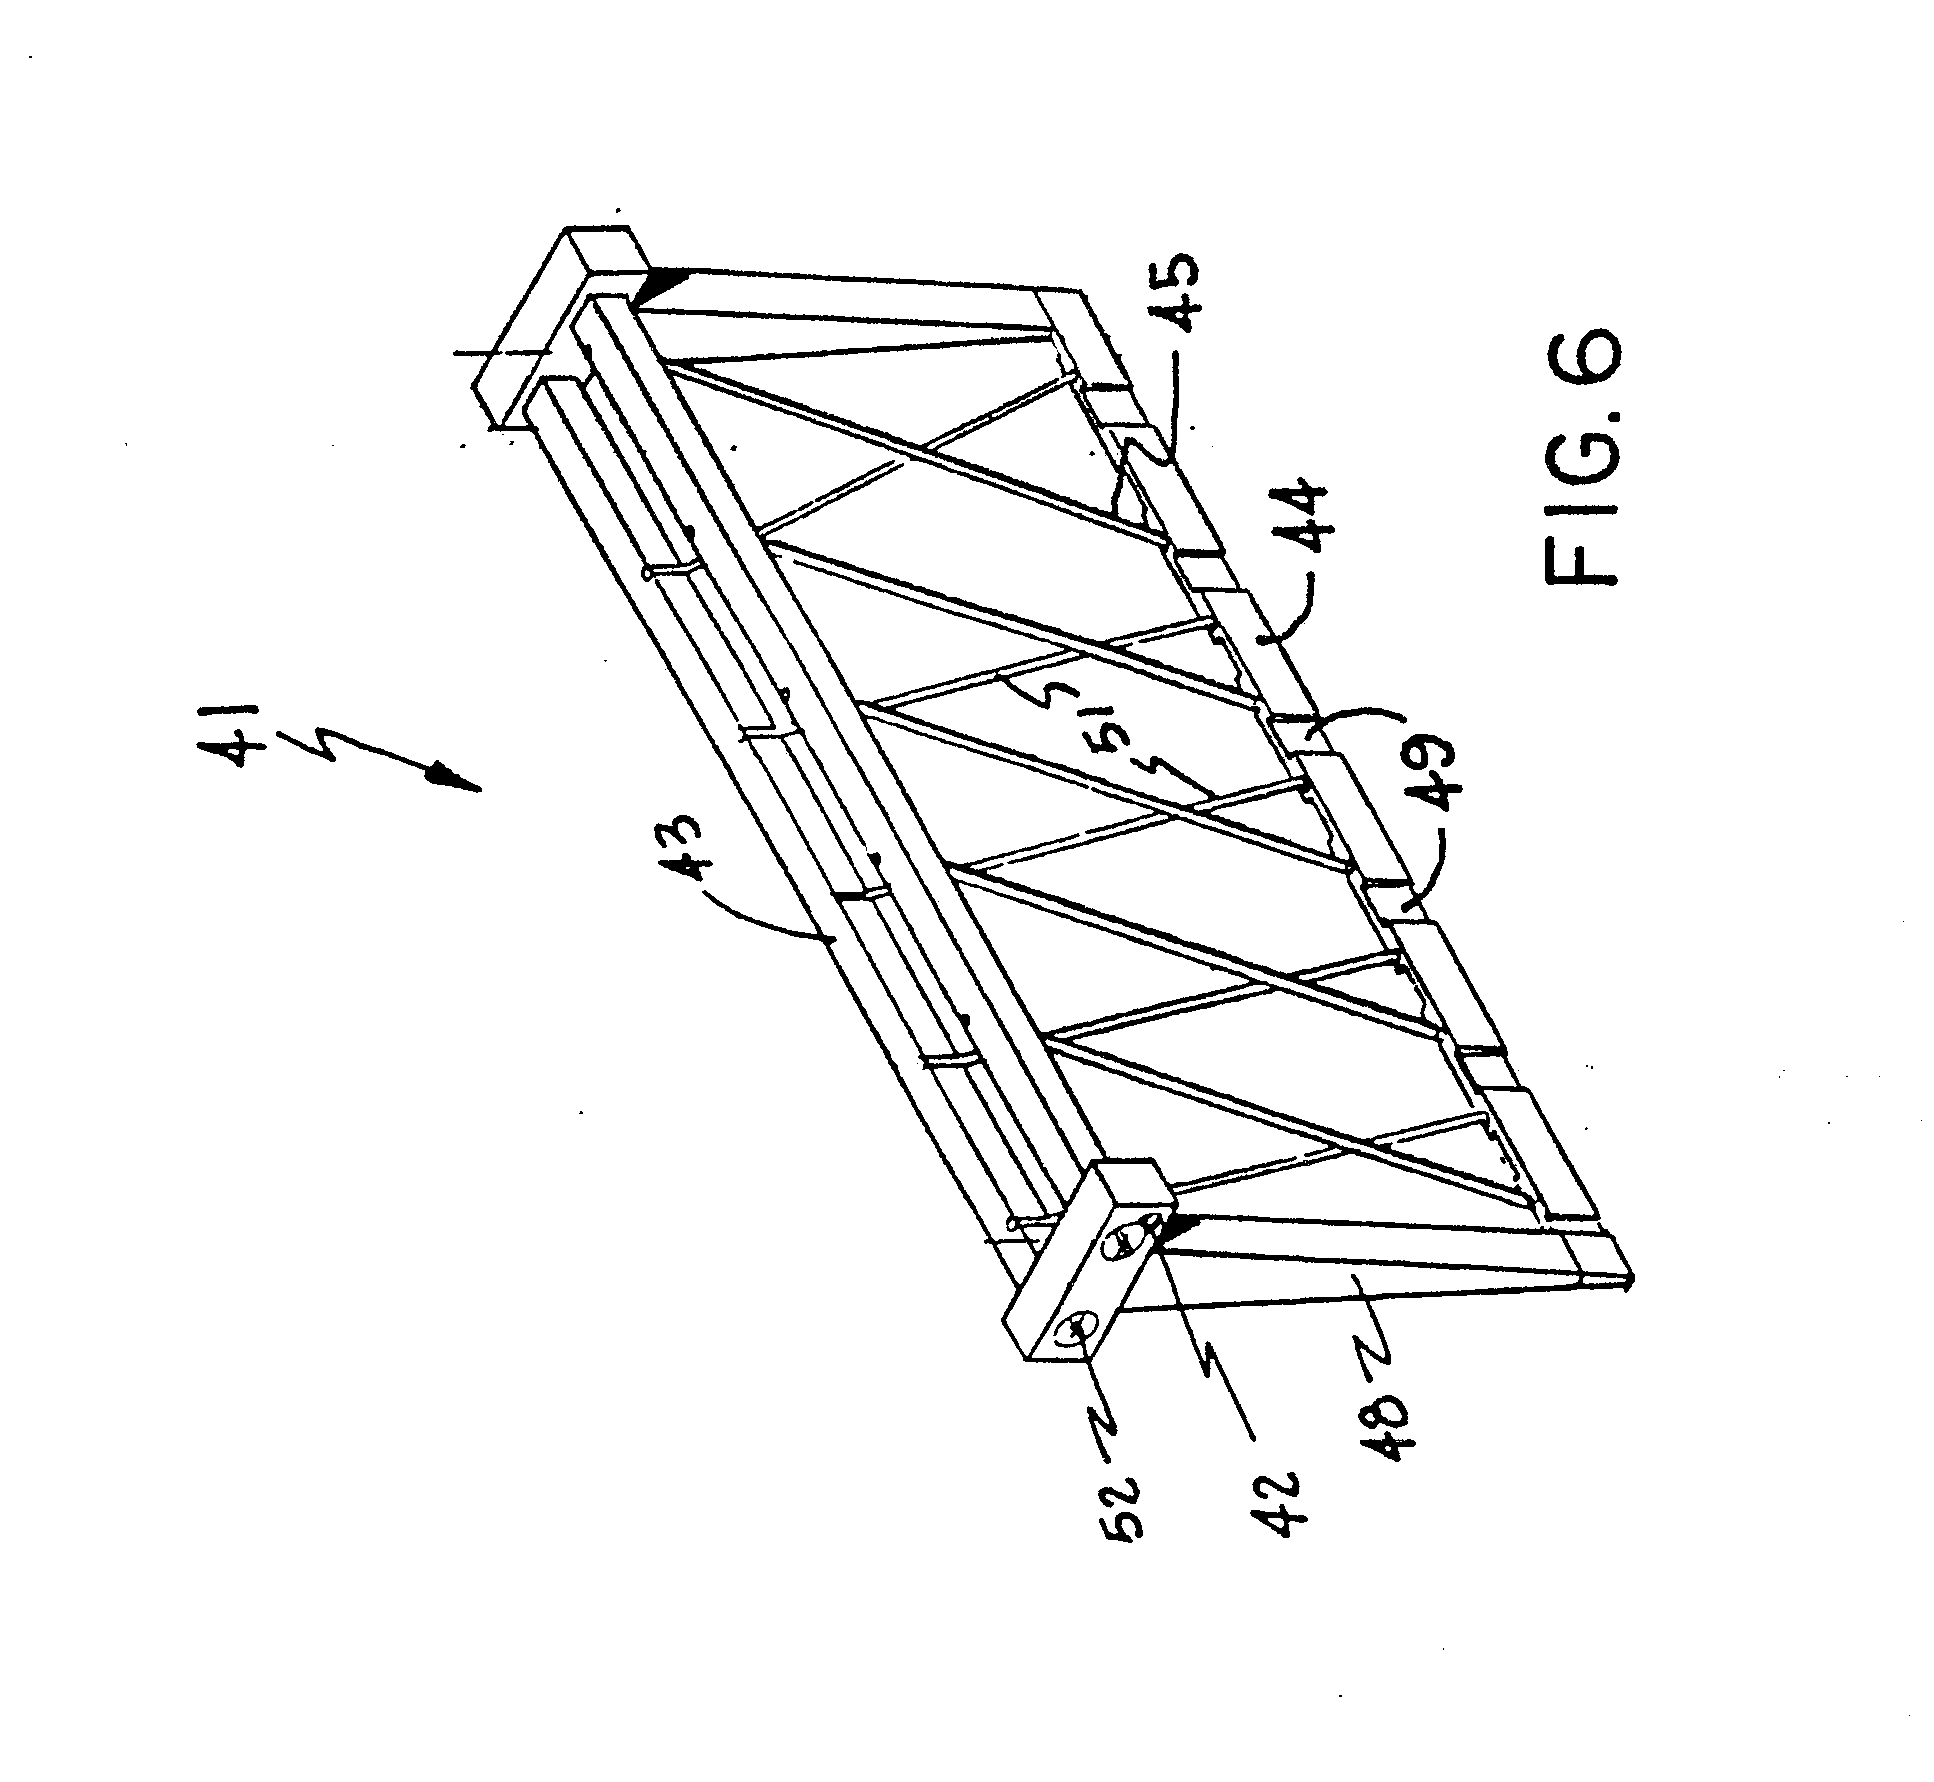 patent ep0237484a2 - battery with modular air cathode and anode cage